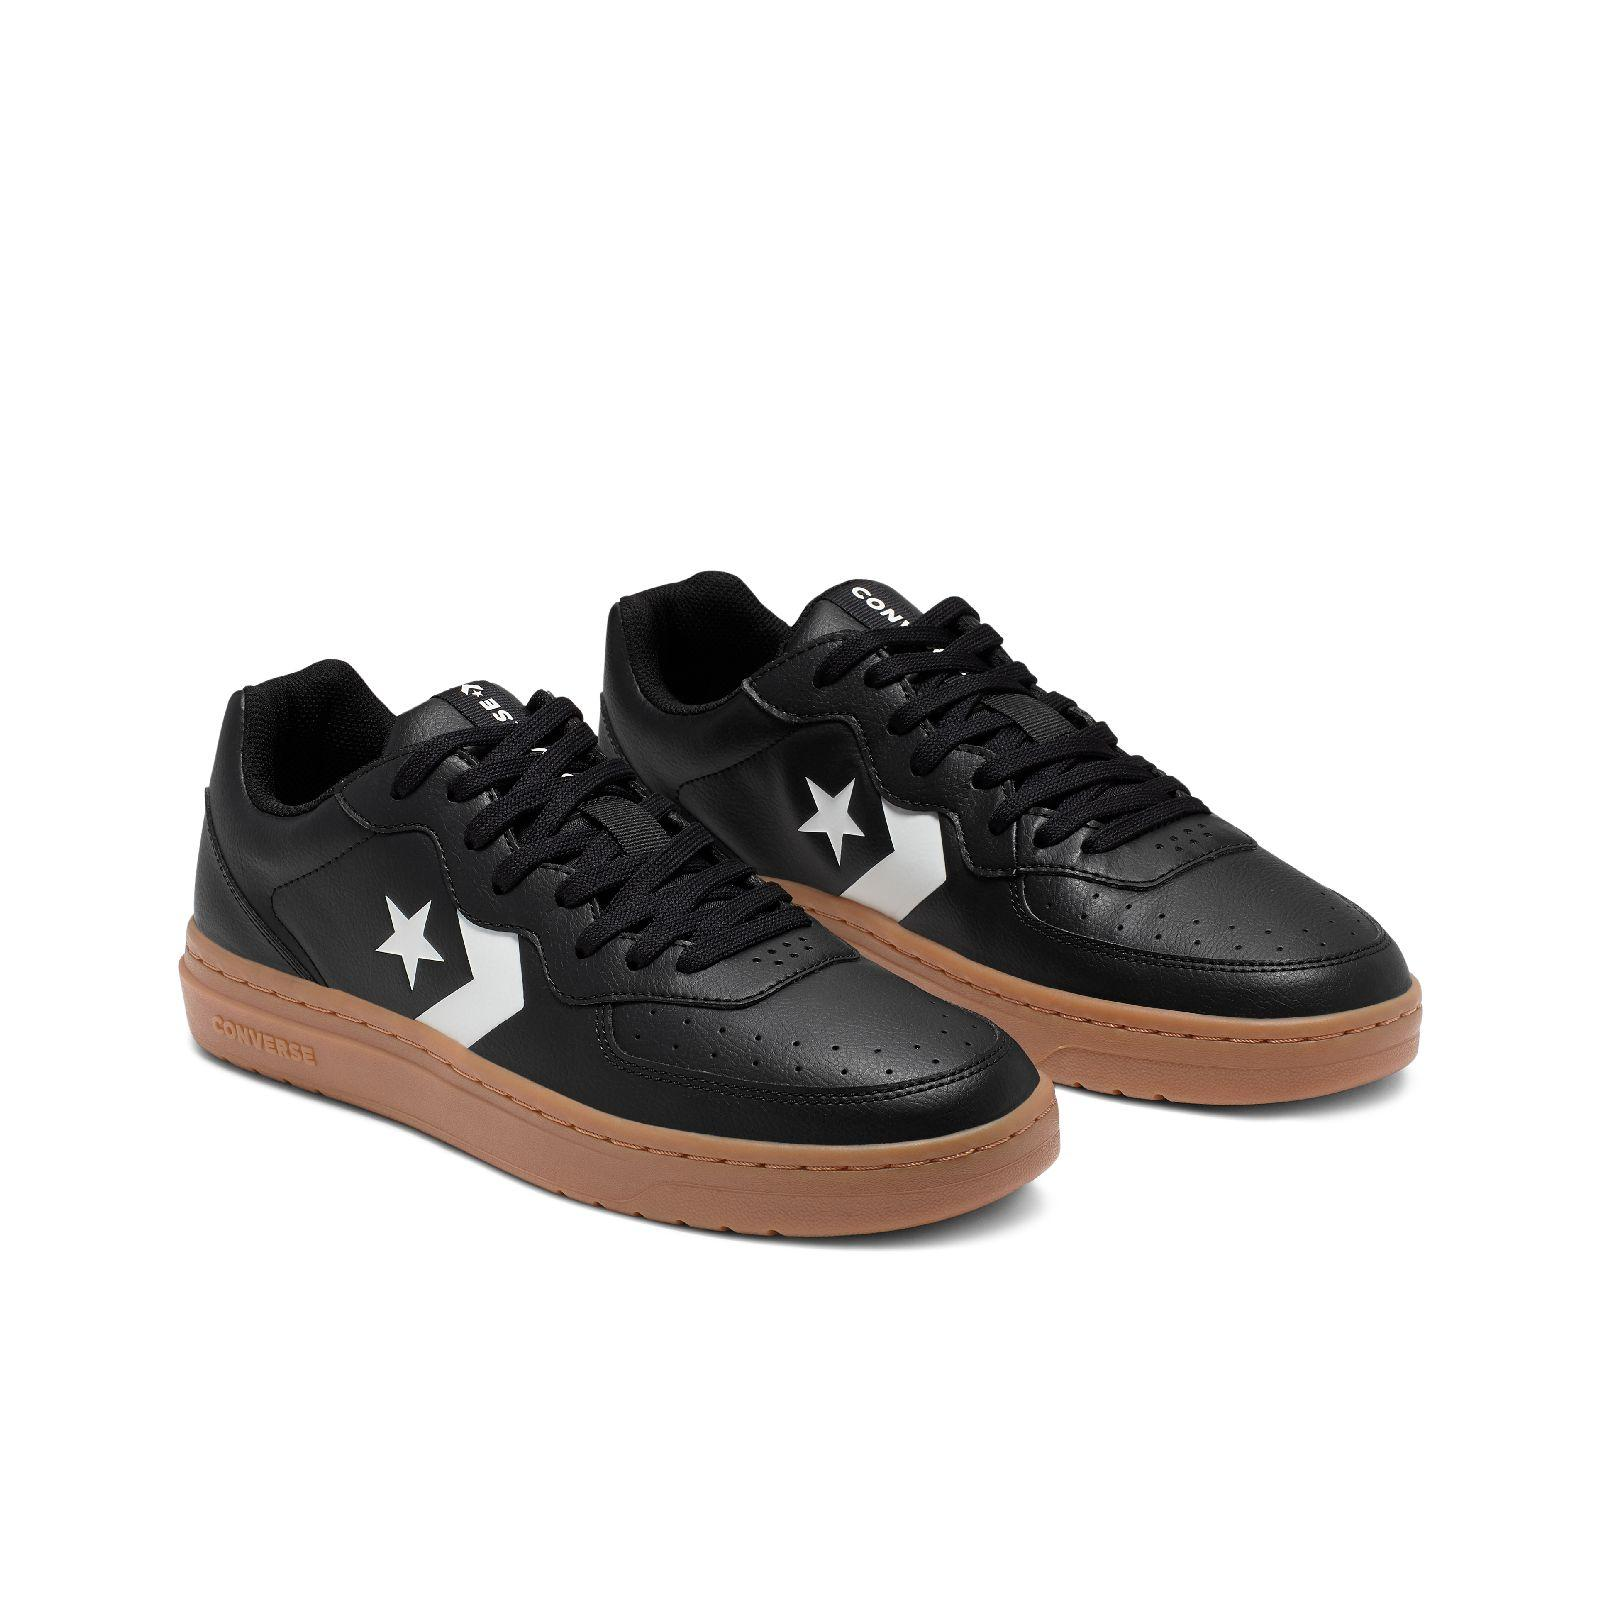 Converse Rival Leather - Cons Force